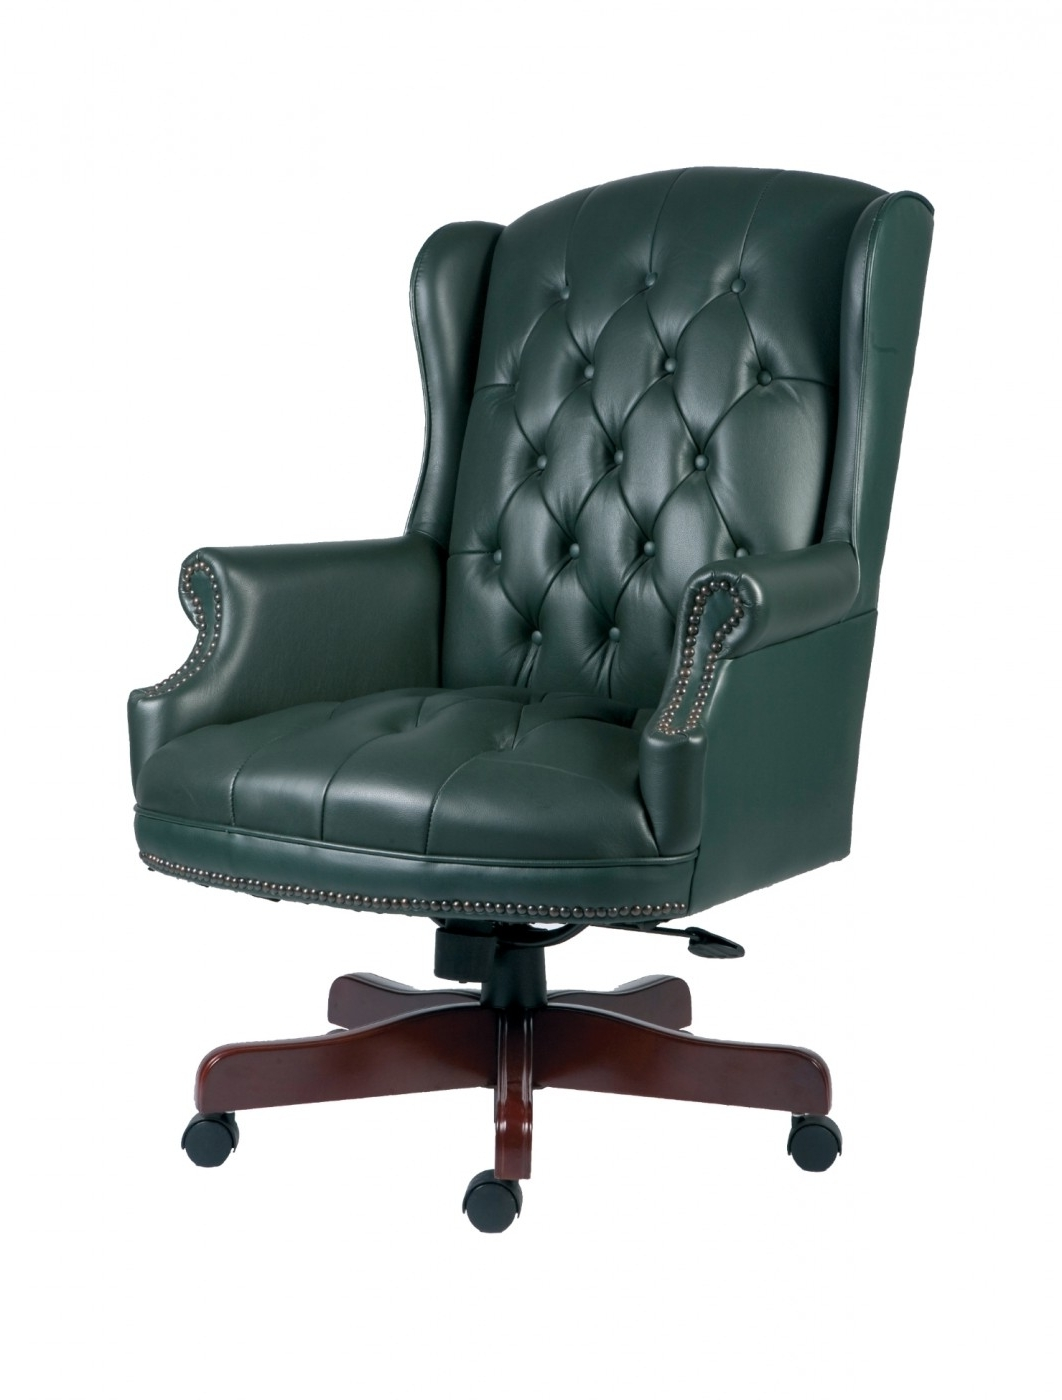 Plush Executive Office Chairs With Newest Teknik Chairman Leather Executive Chair B800 Green (View 14 of 20)